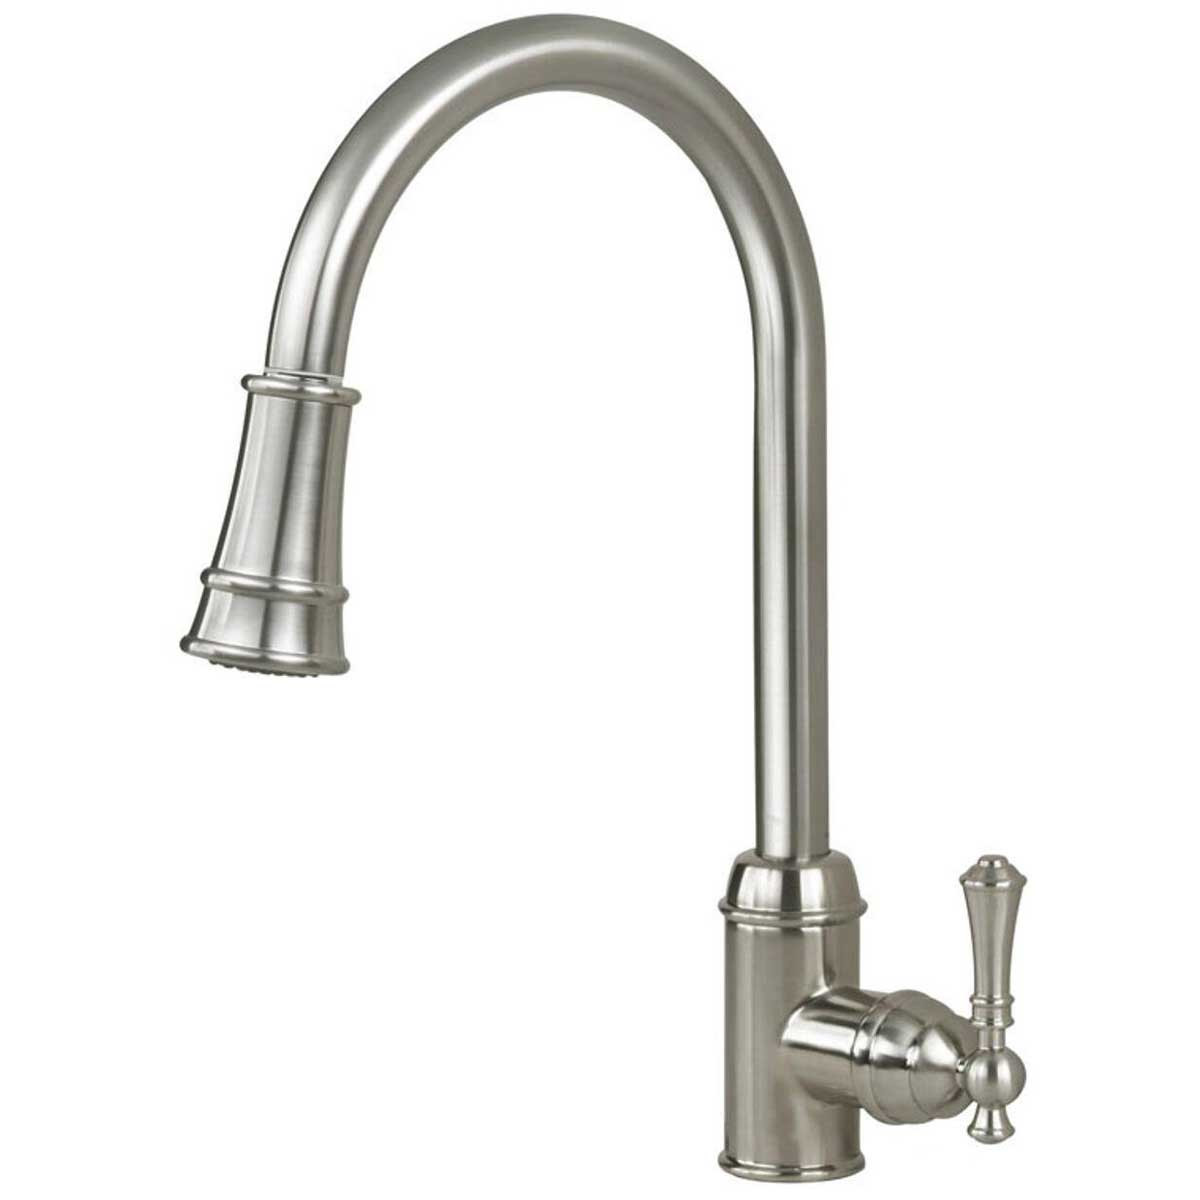 Artisan SingleHandle Kitchen Faucet